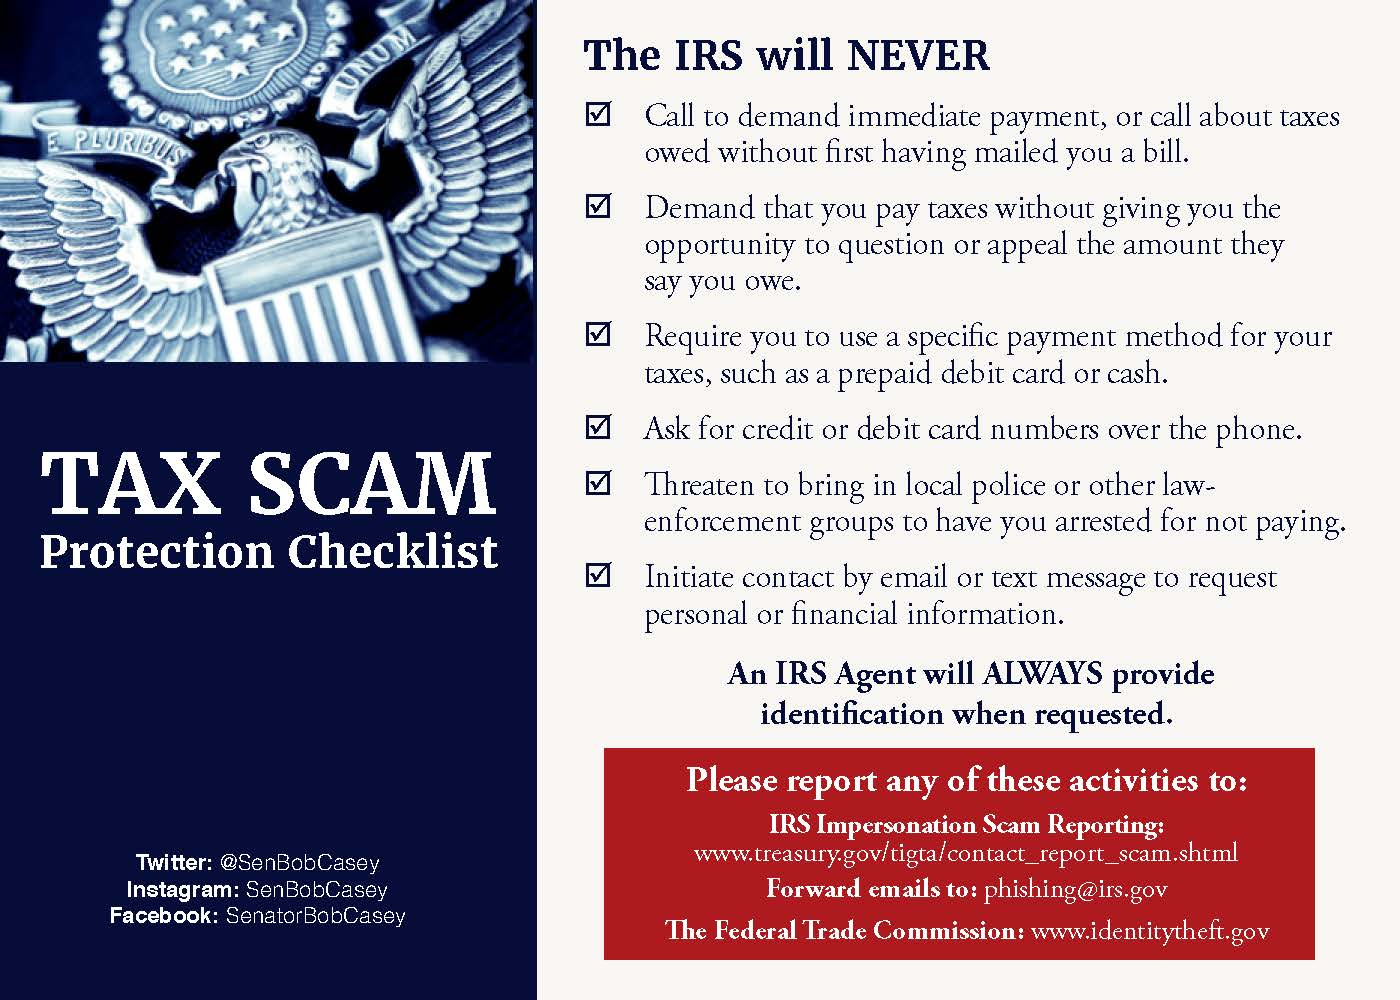 Irs warns of fake tax bills us senator bob casey of pennsylvania casey irs tips falaconquin